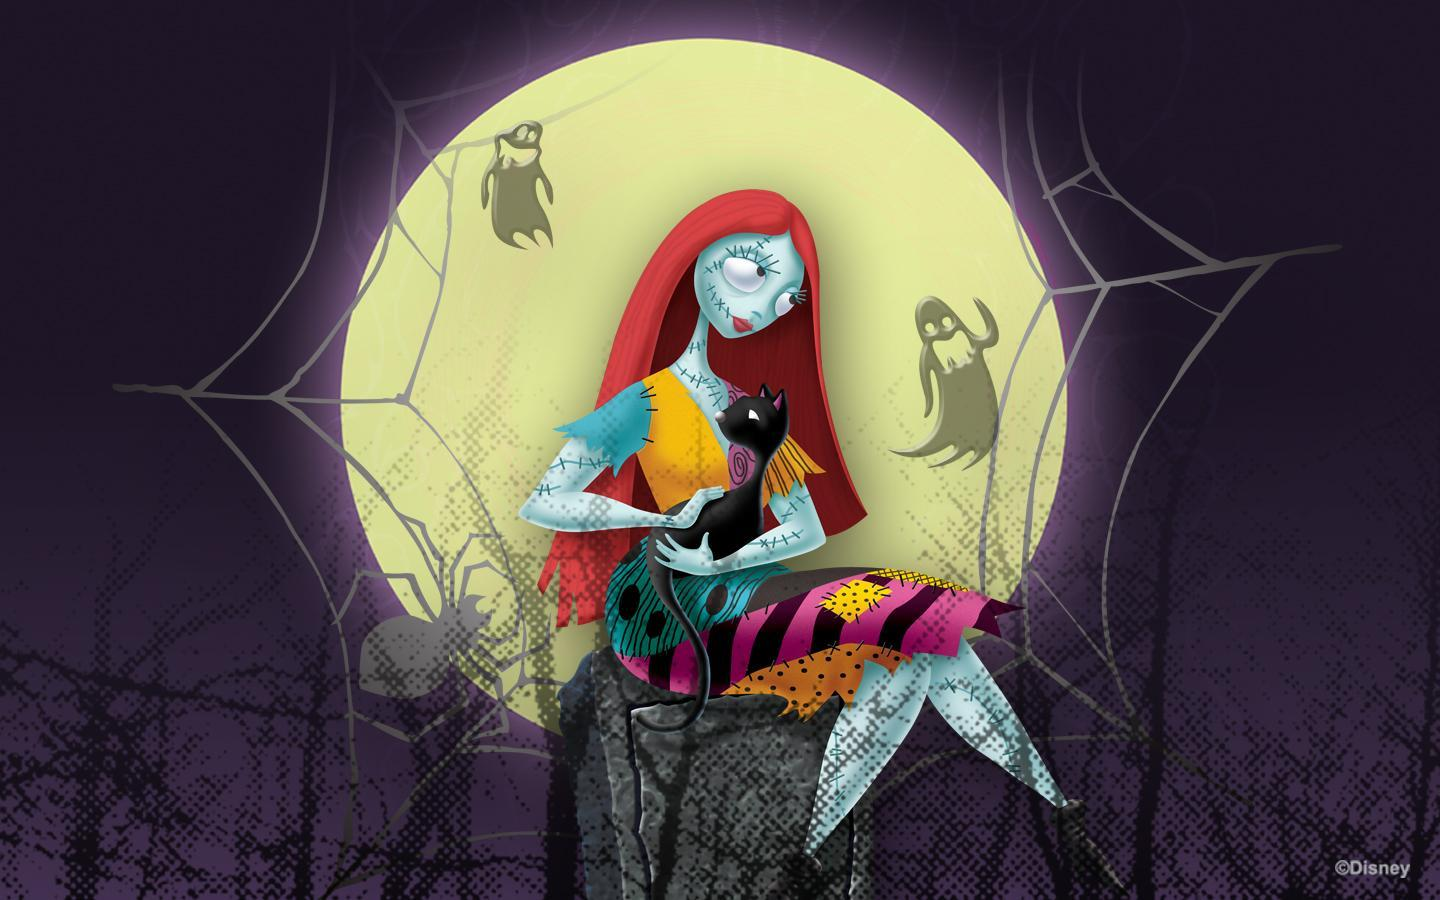 Image Gallery For The Nightmare Before Christmas